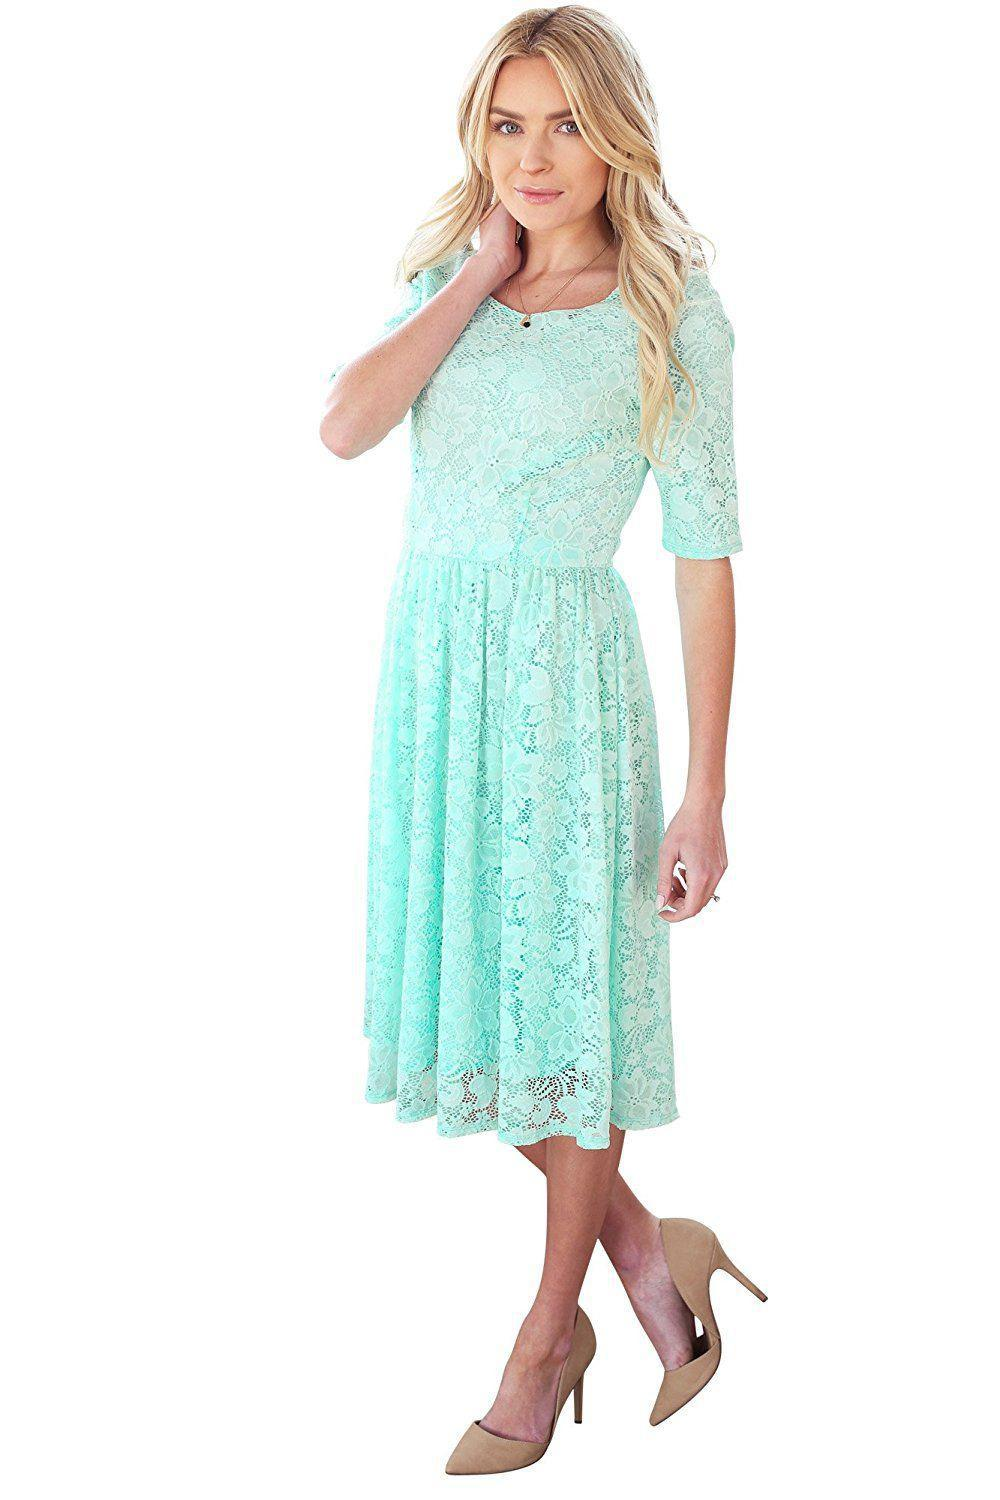 Emmy SeaFoam Bridesmaids Dress modest lace plus size cheap